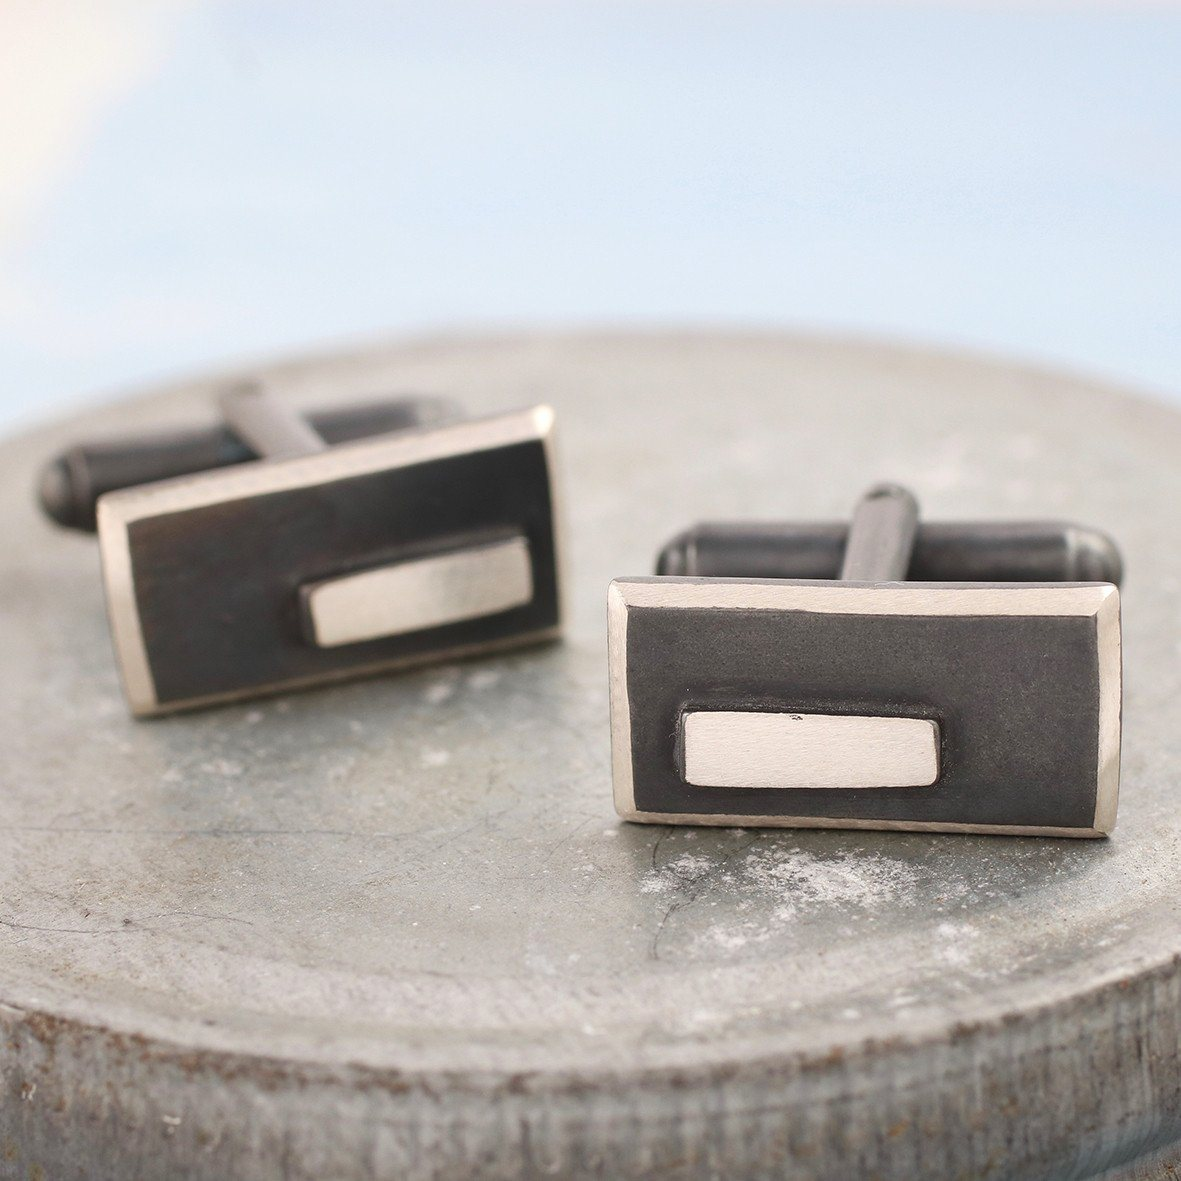 Blsck and silver cufflinks